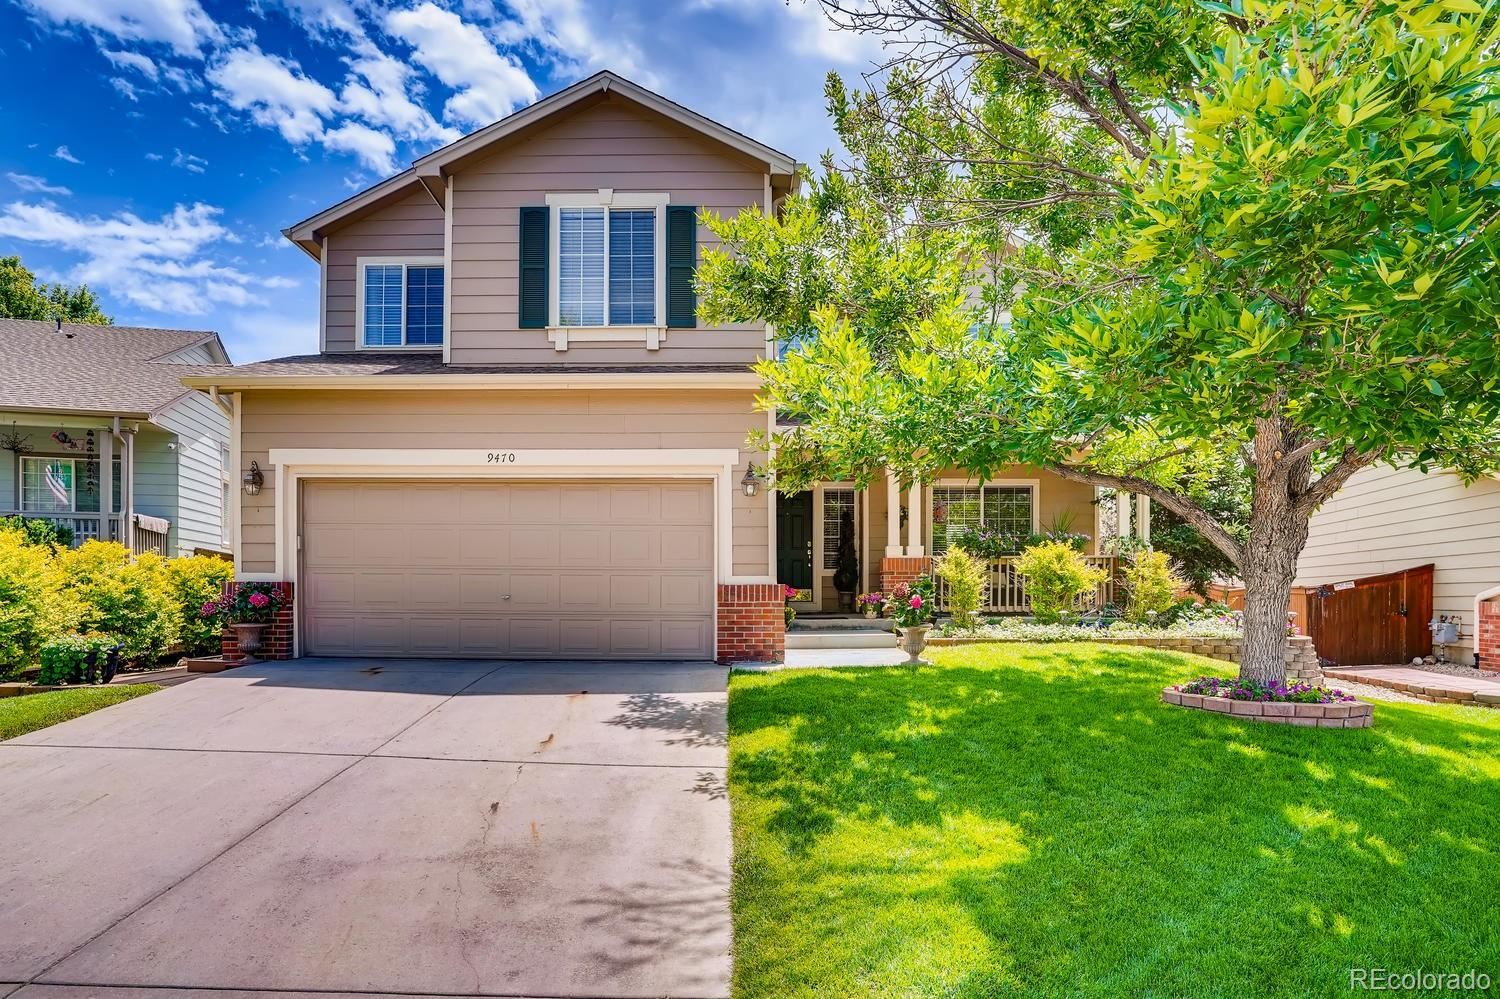 9470 Wolfe Place, Highlands Ranch, CO 80129 - #: 4240022